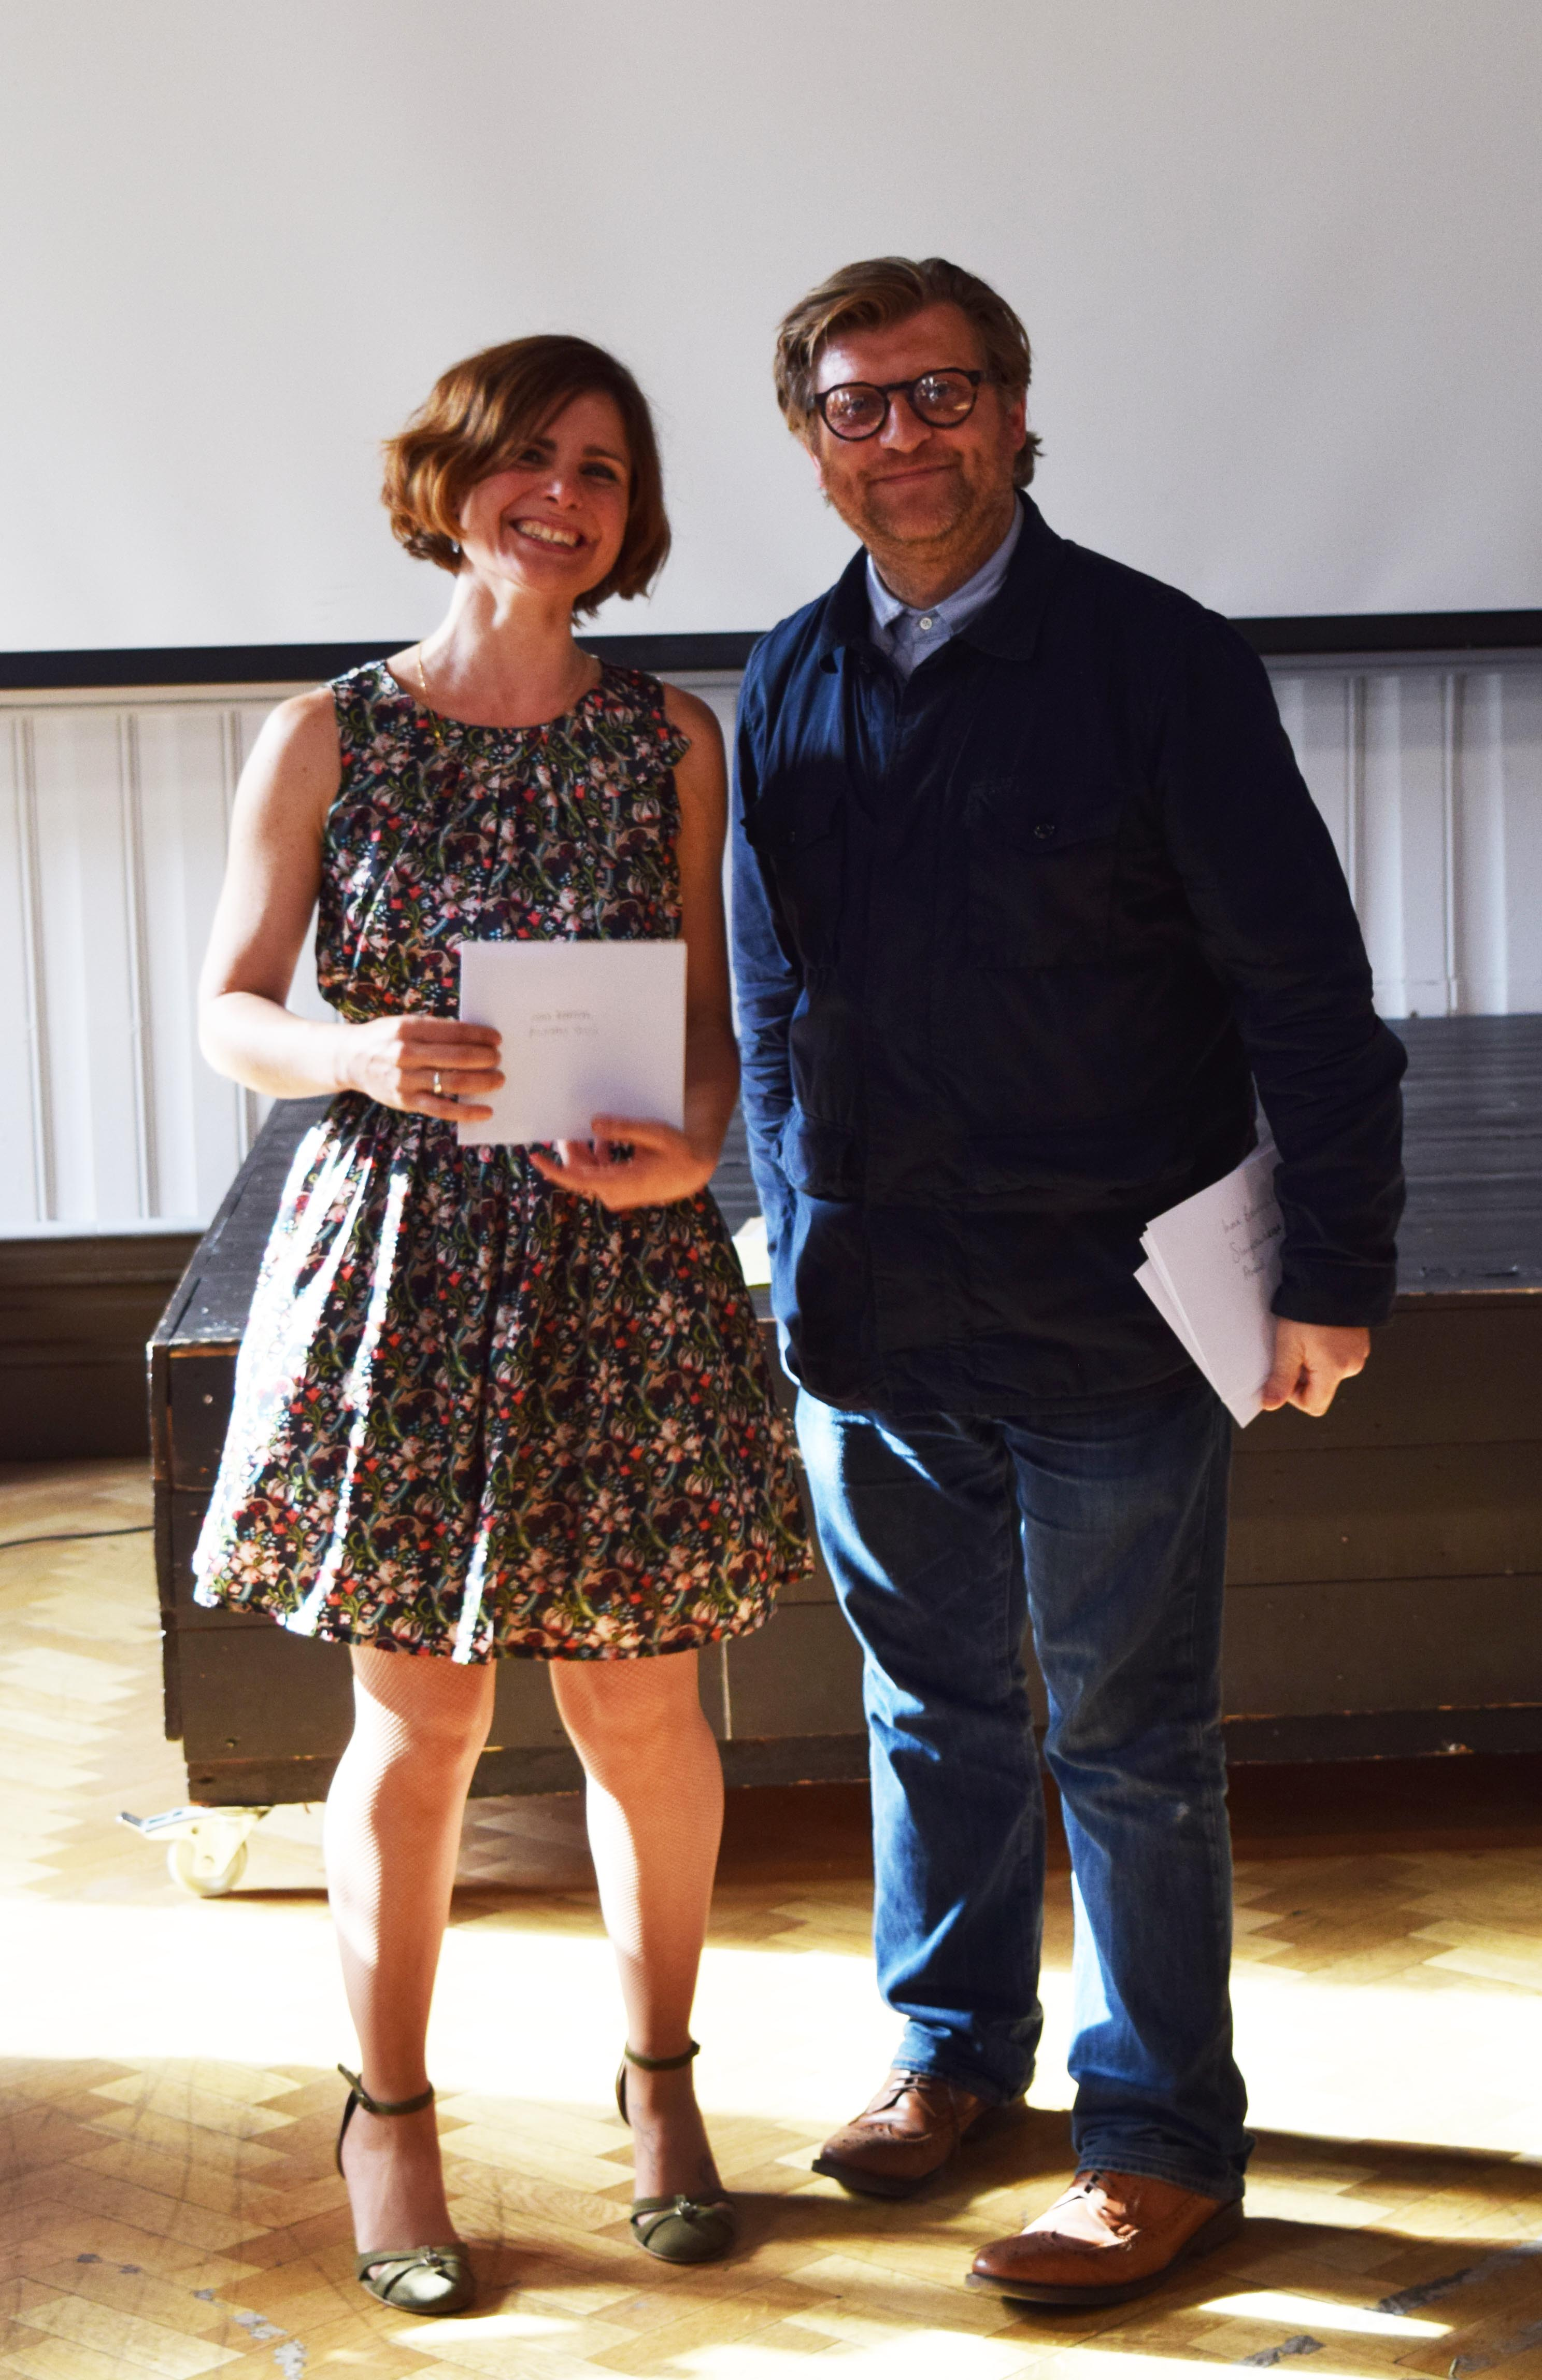 Inma Berrocal with one of her awards and Dean of Camberwell, Nick Gorse